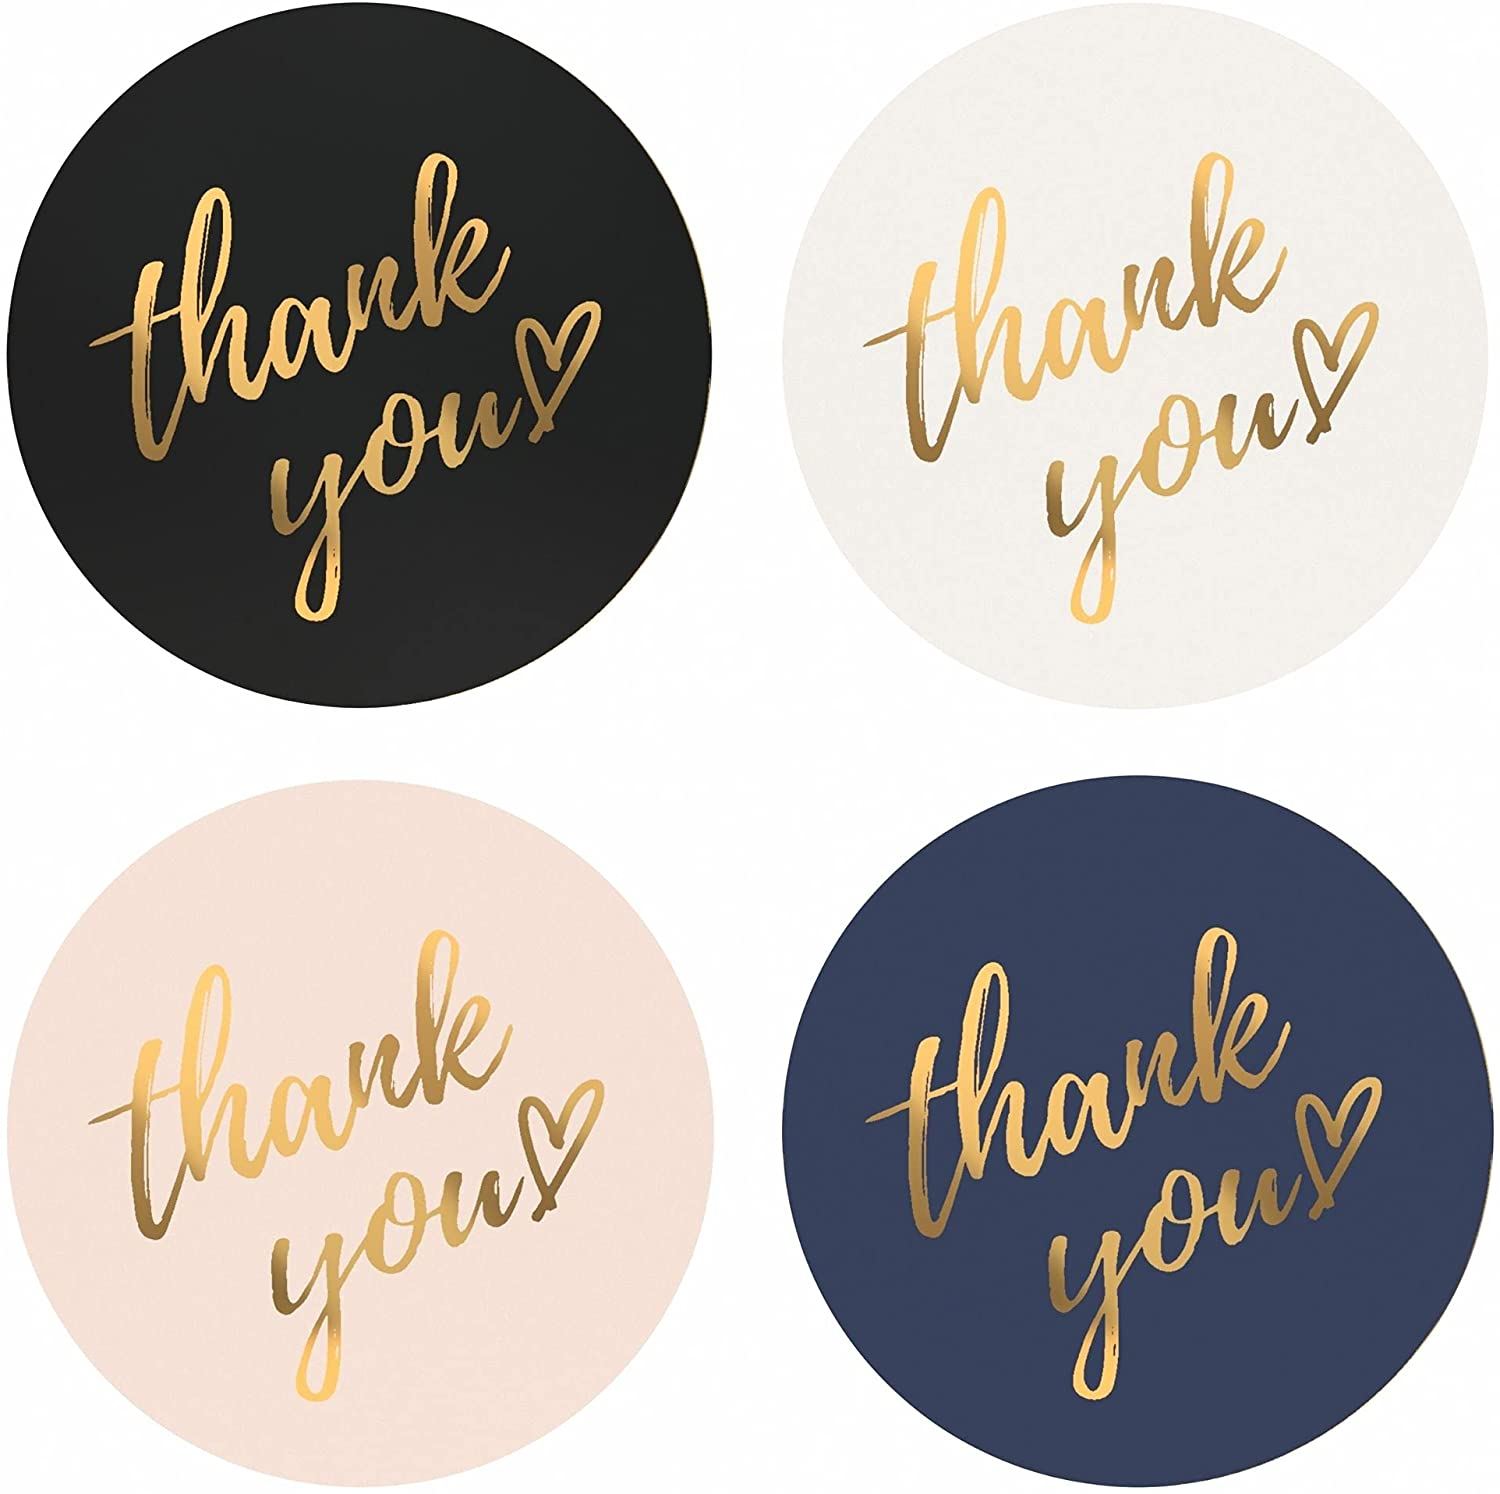 Mobiusea Party Thank You Stickers Roll | Simple and Sincere | 1.5 inch | Waterproof | 500 Labels for Small Business, Packaging, Mailer Seal Stickers | 4 Classic Colors with Gold Foil Design